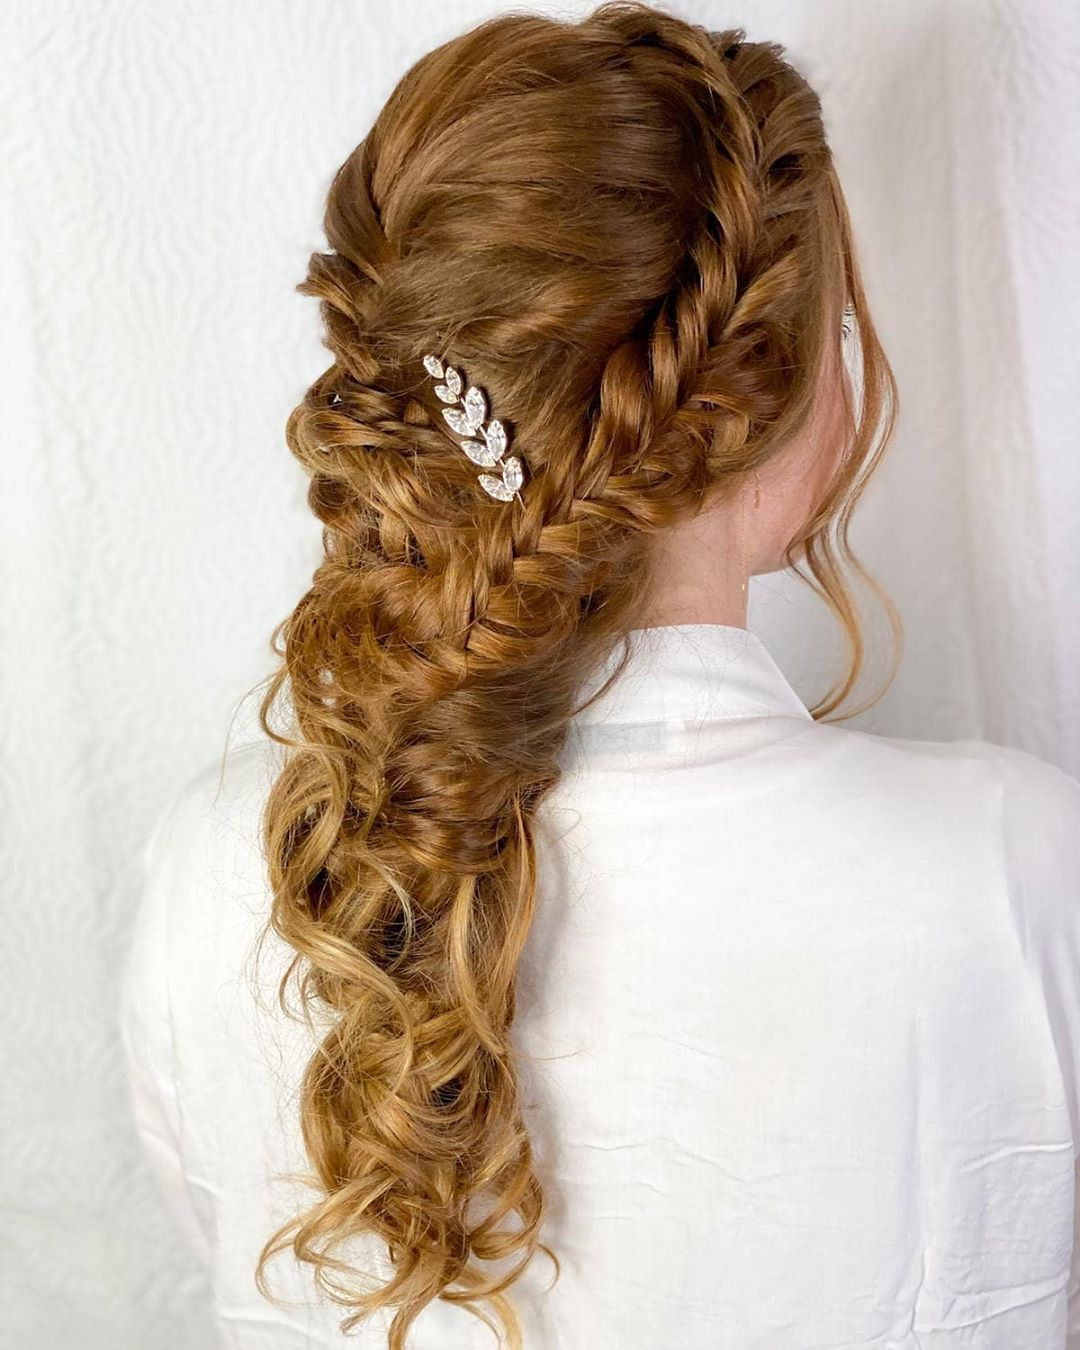 Multiple types of braids including French braid and bohemian style braids